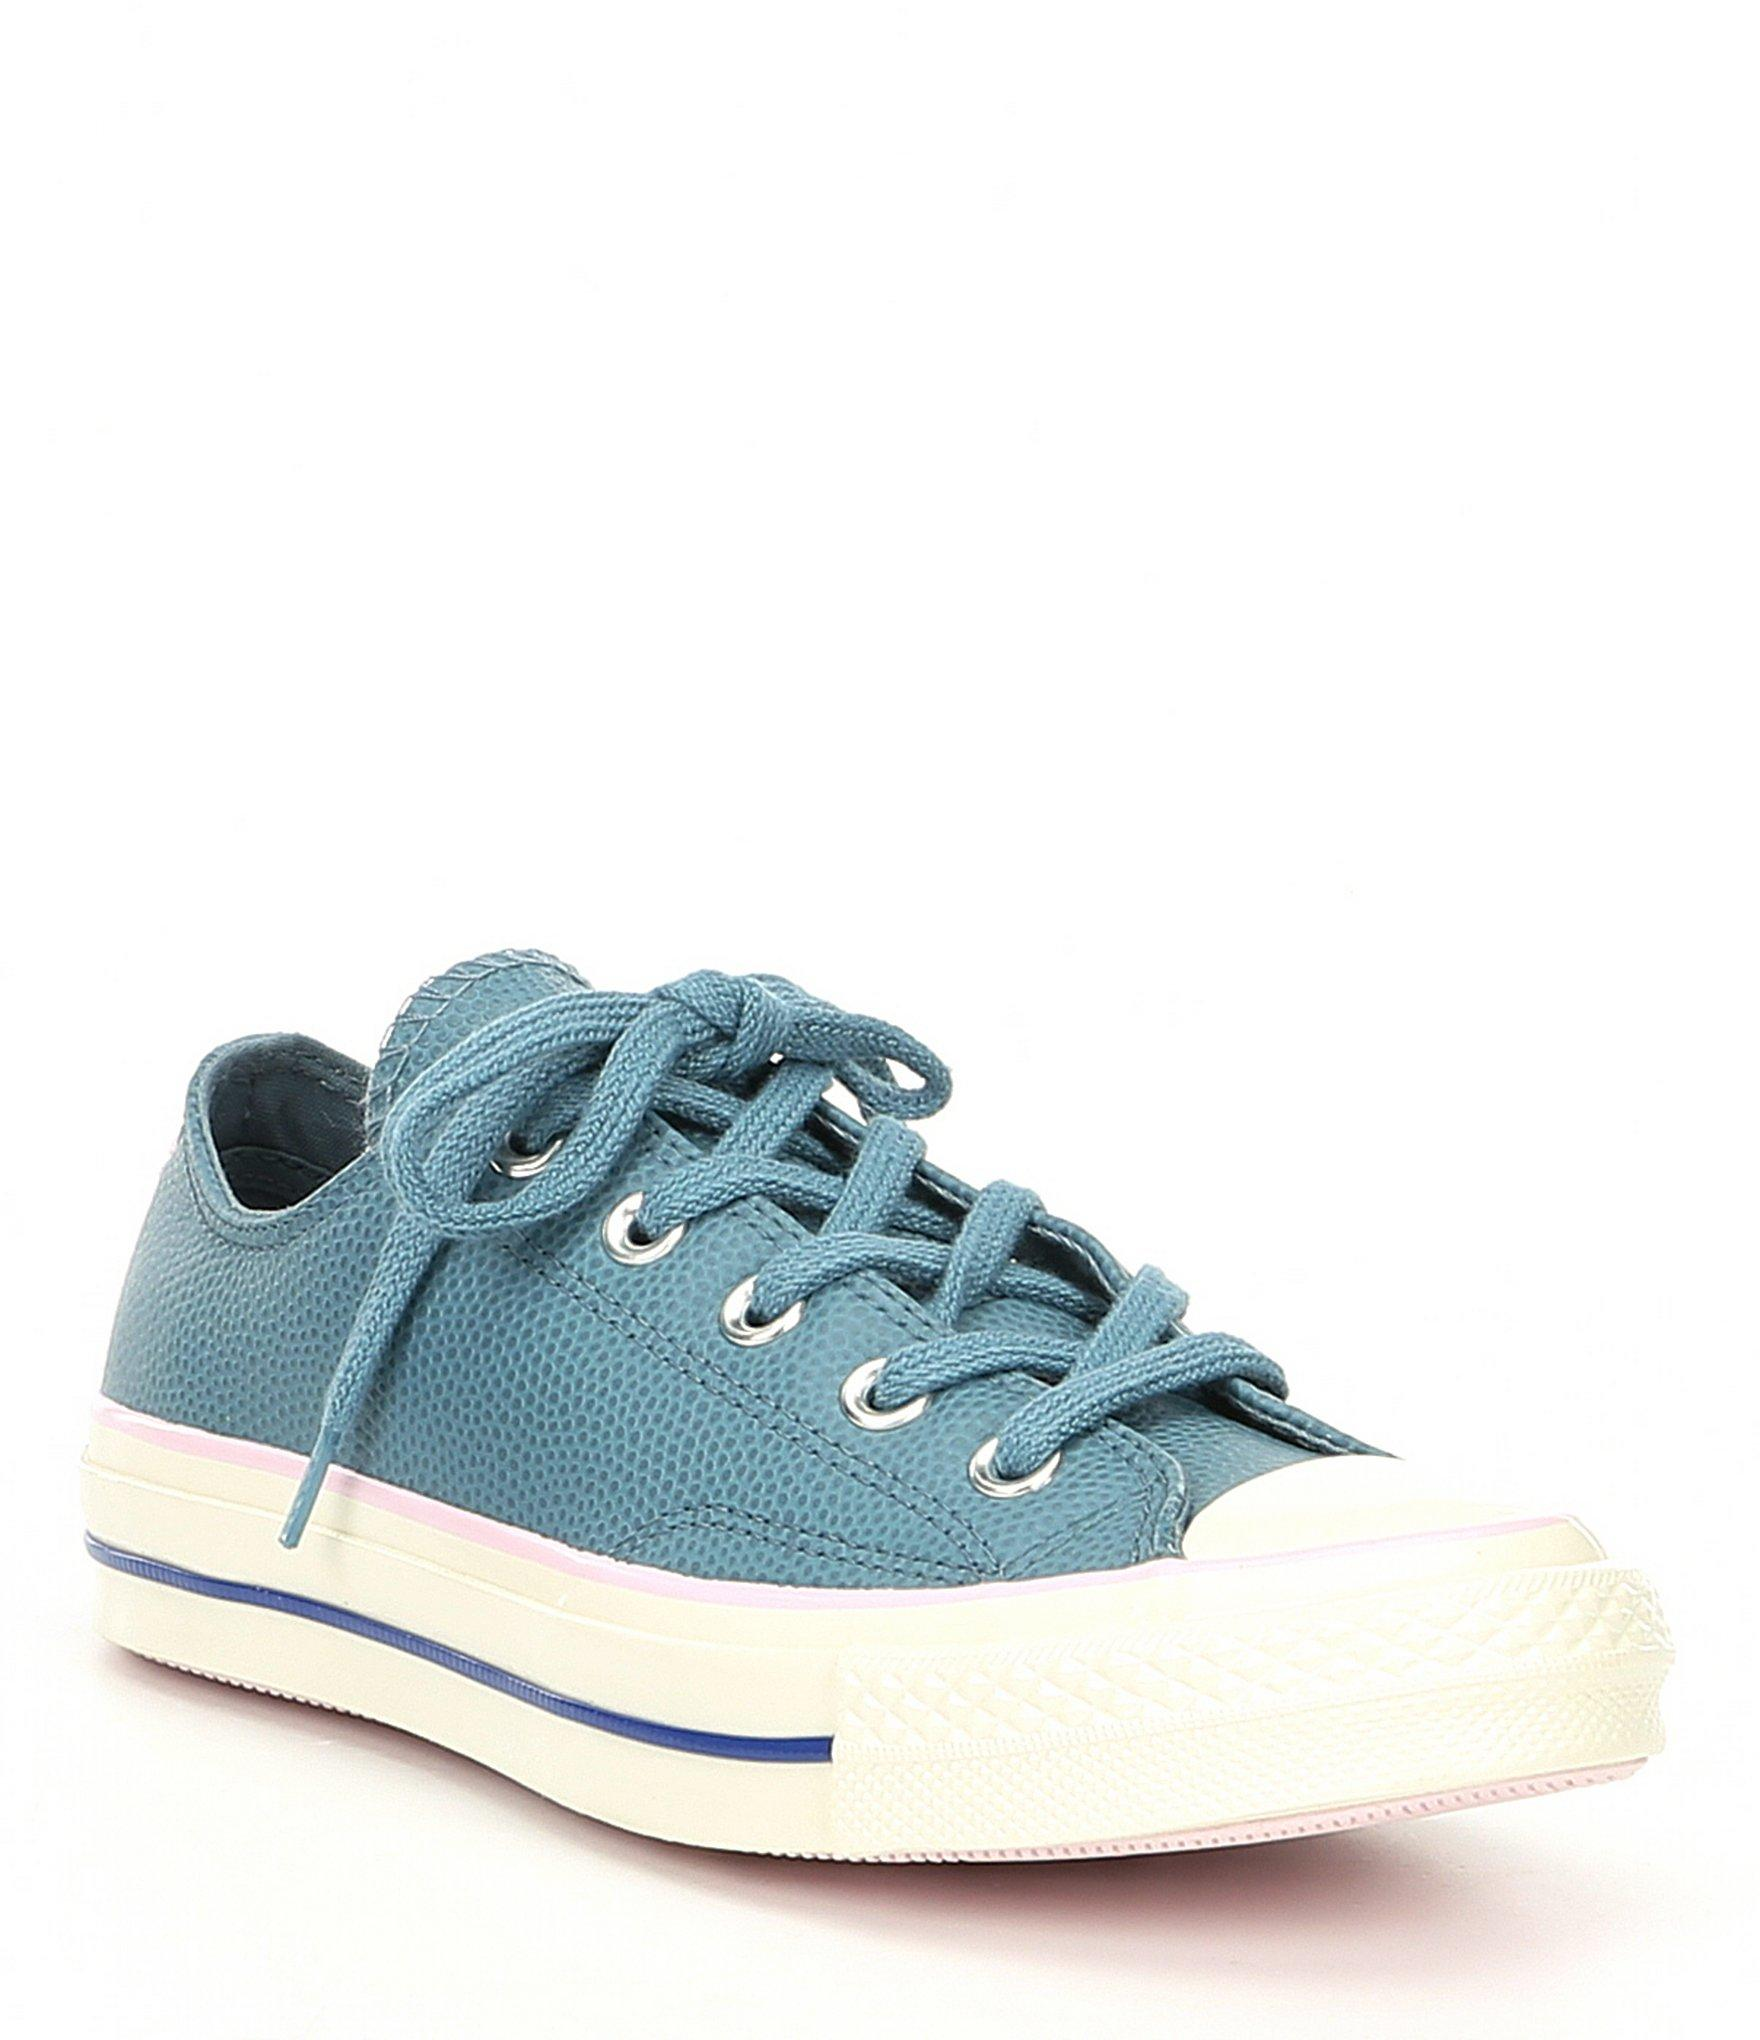 508421ca4702 Lyst - Converse Women s Pebble Leather Chuck 70 Pastel Low-top ...